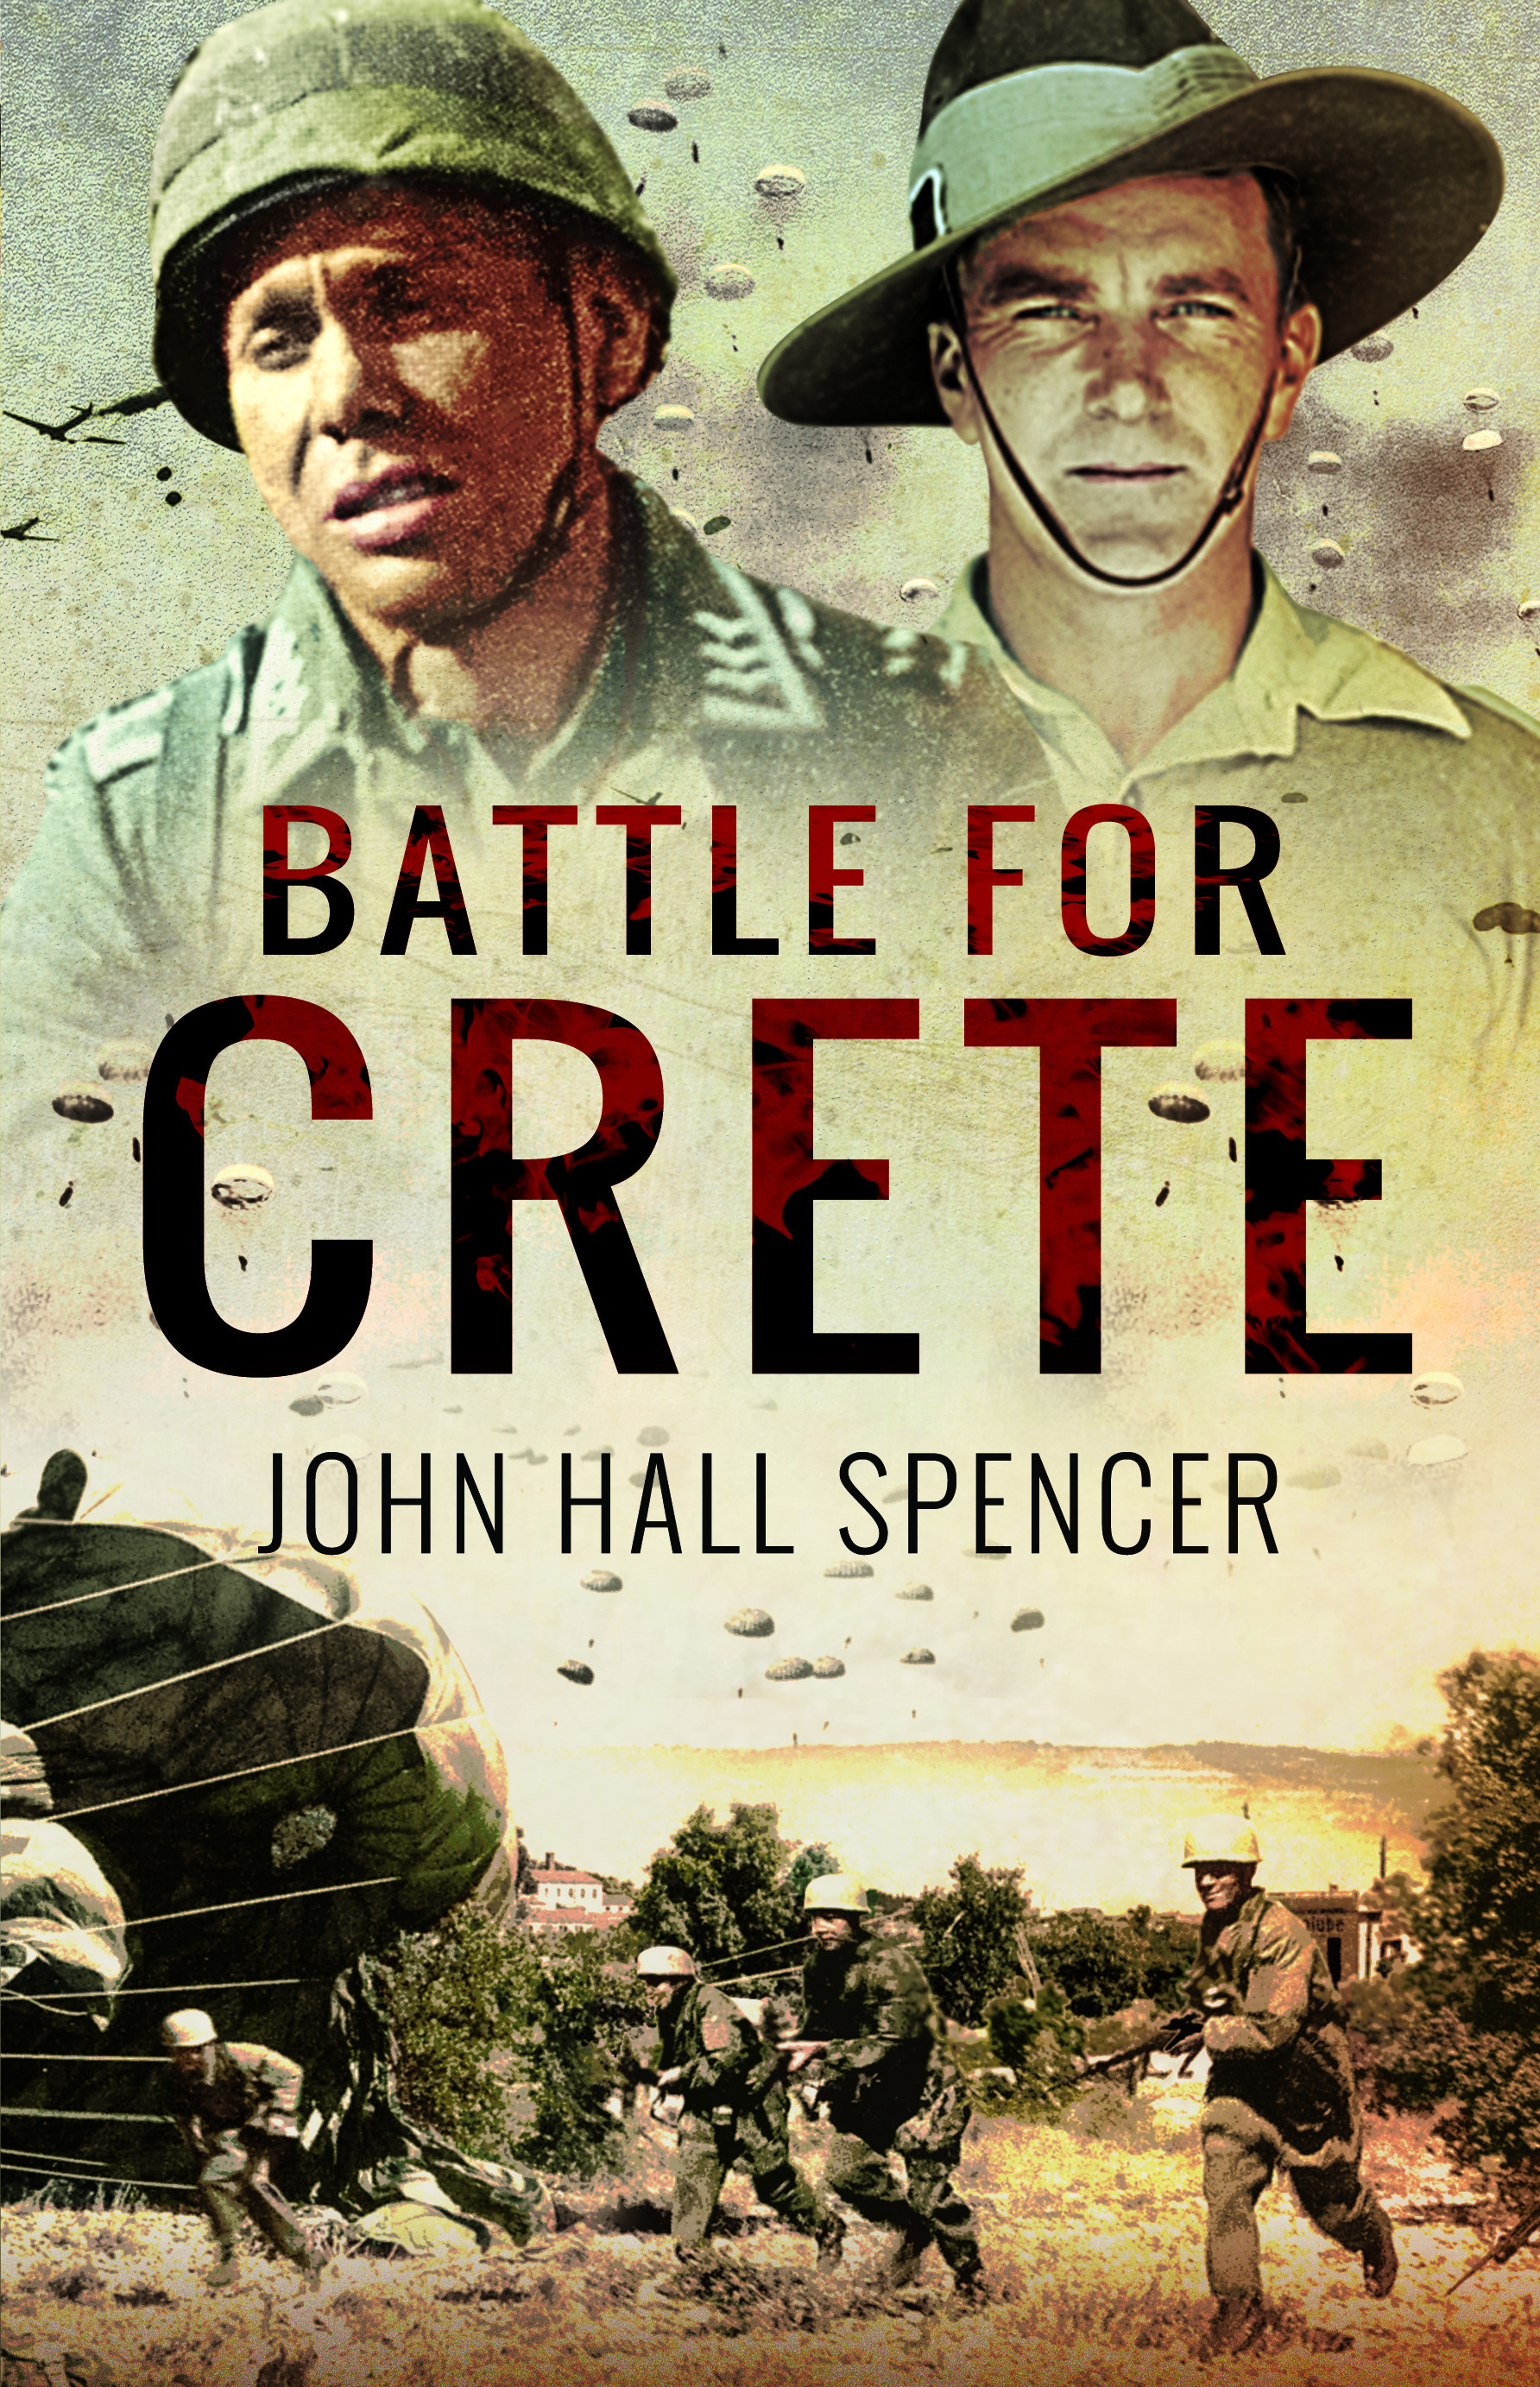 Battle For Crete by John Hall Spencer Front Cover